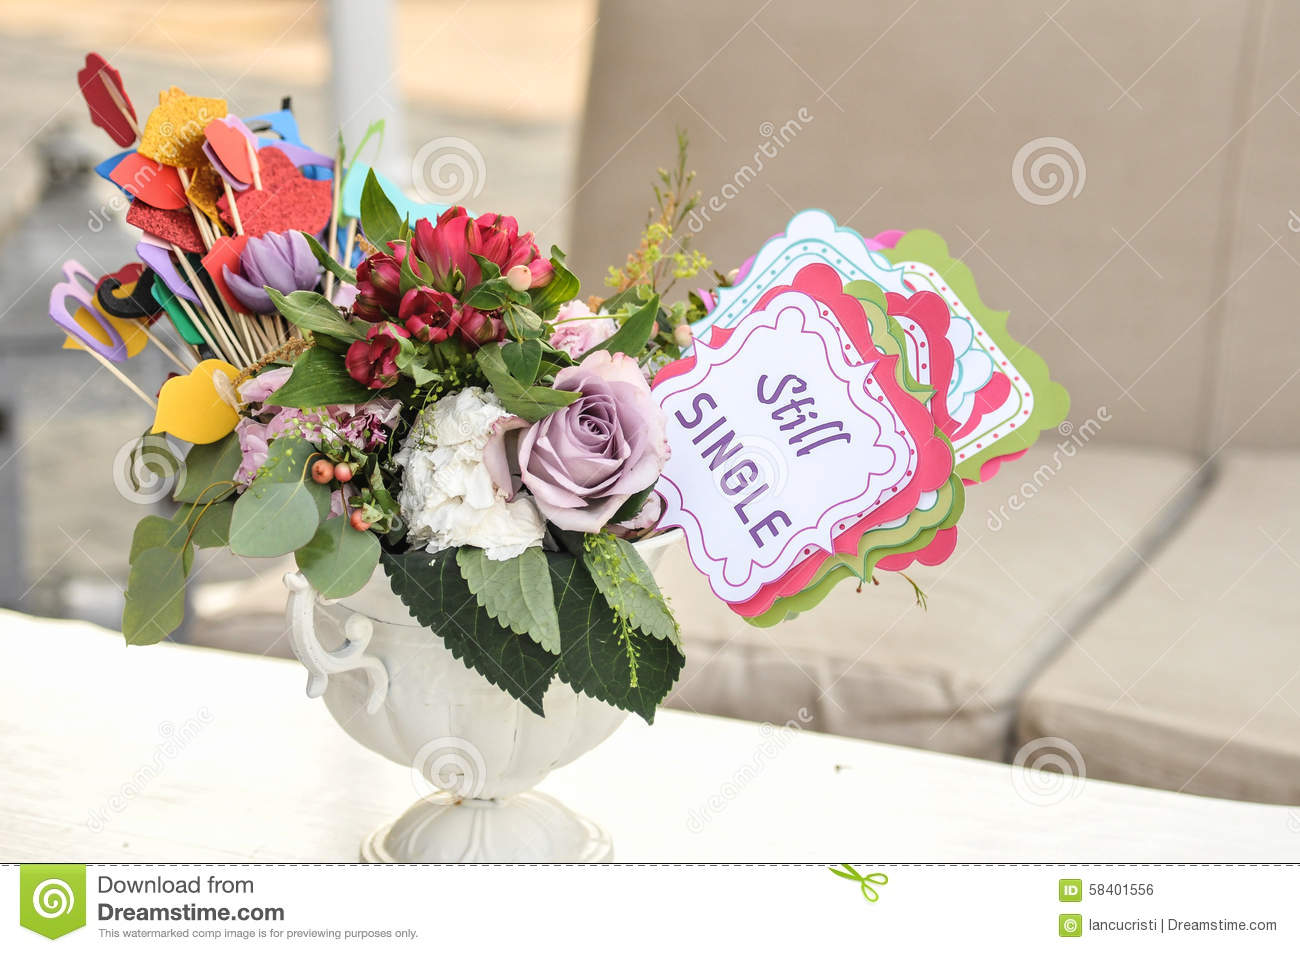 Multicolored Fresh Flowers Bouquet And Paper Decorations In A Vase